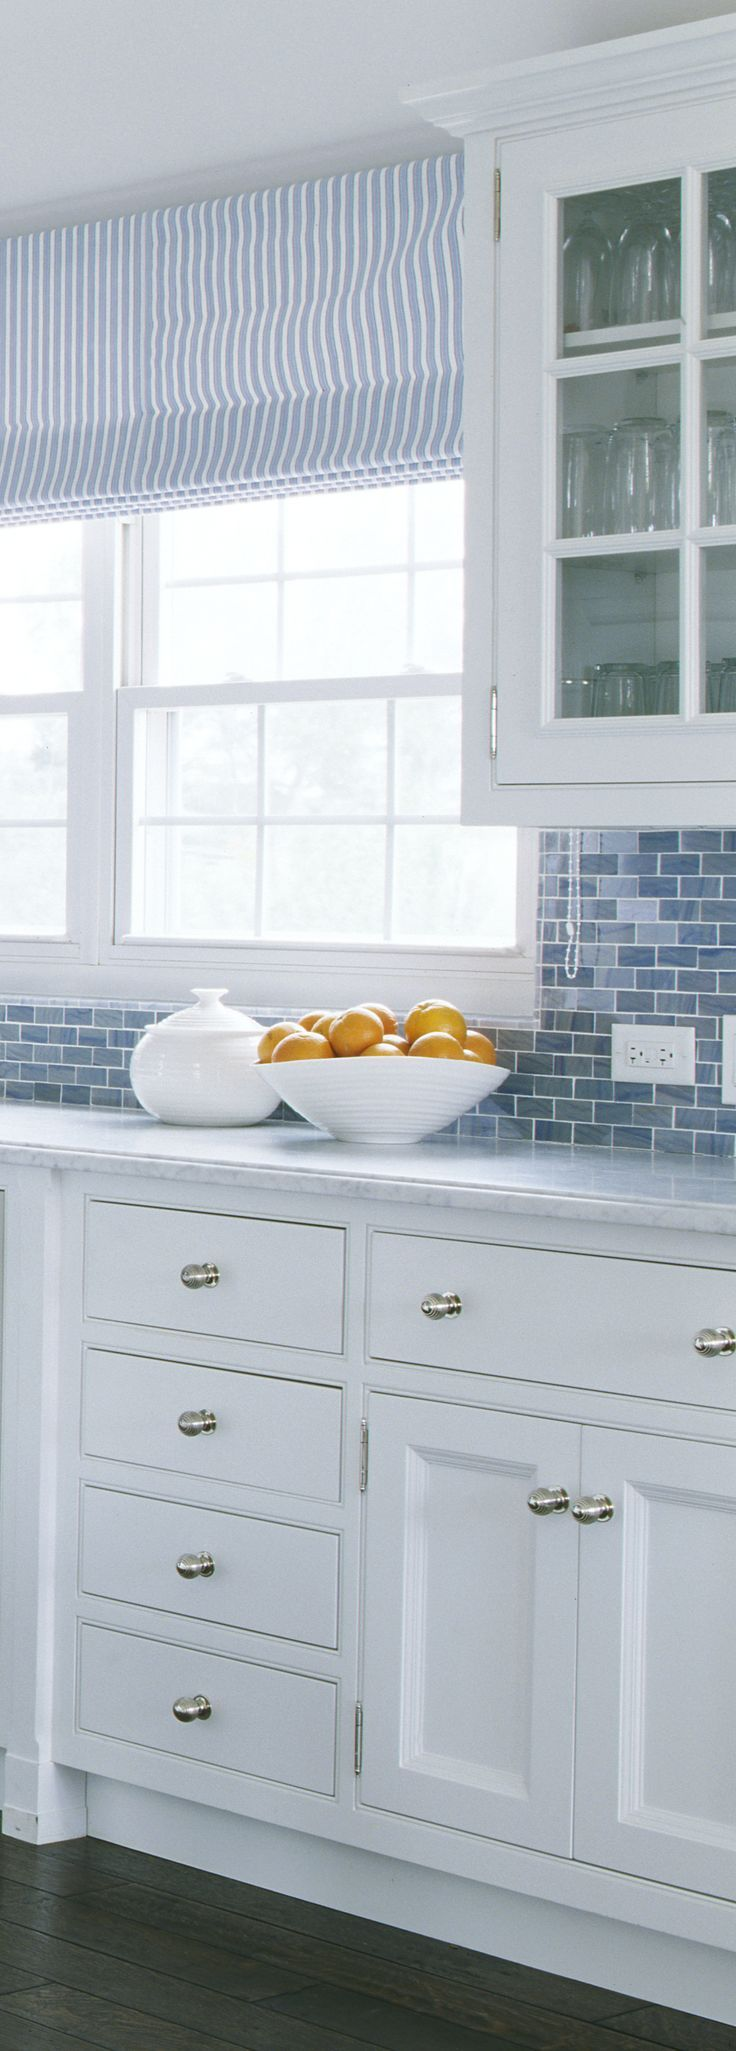 Blue tile backsplash in  coastal kitchen with white cabinets and silver hardware also check new ideas